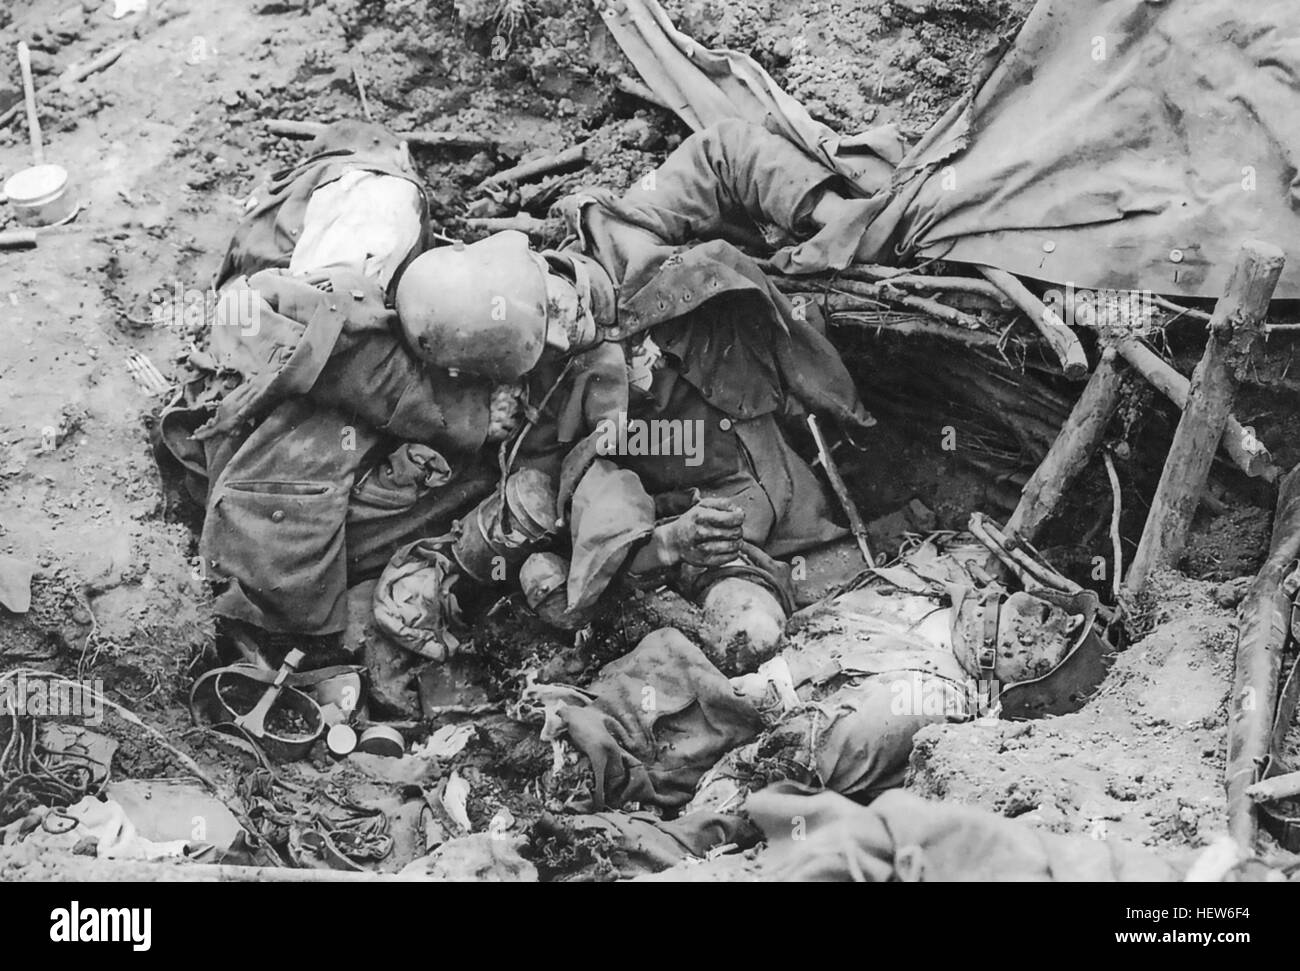 BATTLE OF PASSCHENDAELE (Third Battle of Ypres) July-November 1917. Two German dead in a shallow trench while eating - Stock Image